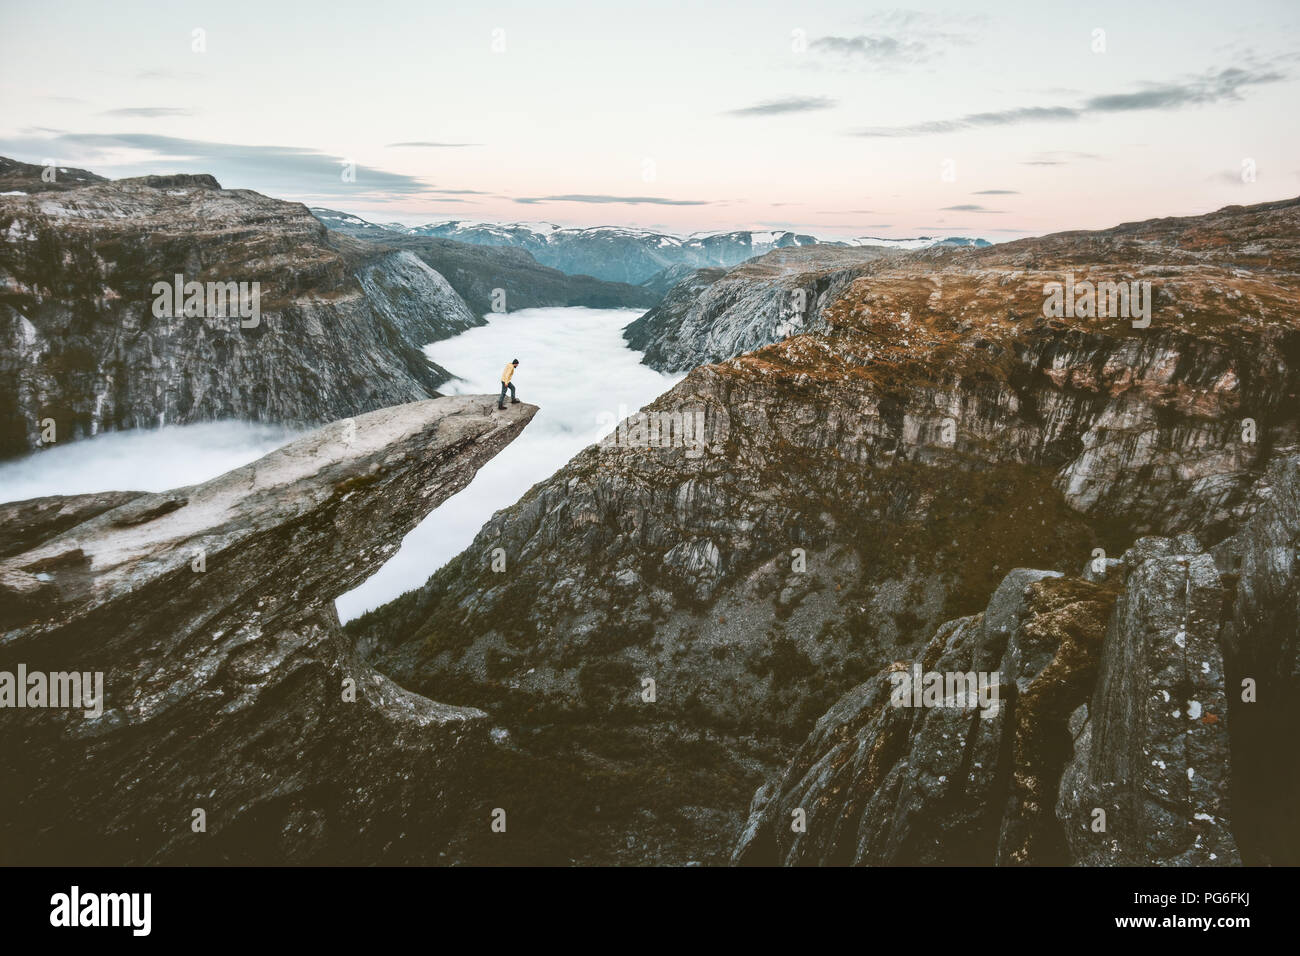 Traveler on the edge of Trolltunga cliff  traveling in Norway adventure lifestyle extreme trip vacations outdoor rocky mountains over clouds landscape - Stock Image